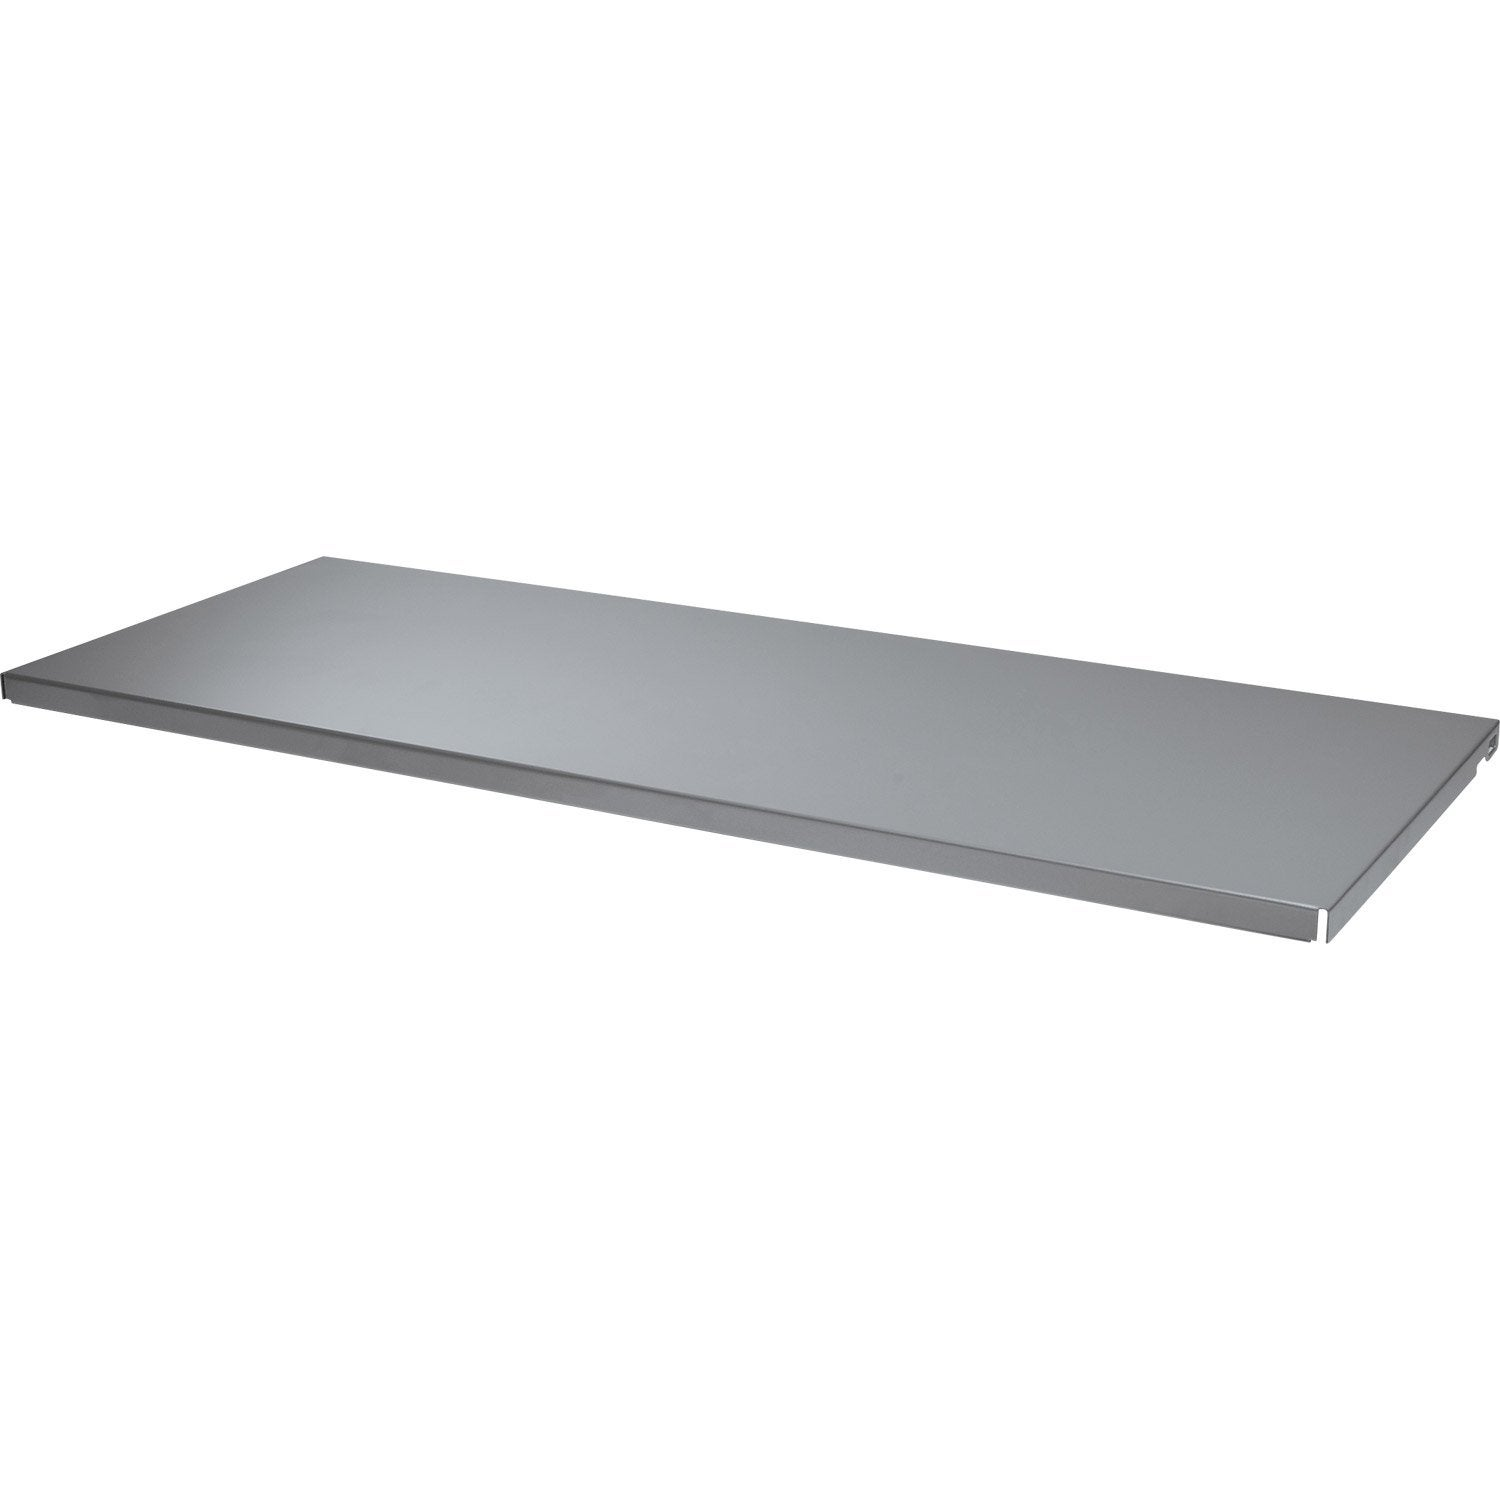 Bordure acier leroy merlin bordure planter aspect rouille acier galvanis gris h latest bordure - Volige leroy merlin ...